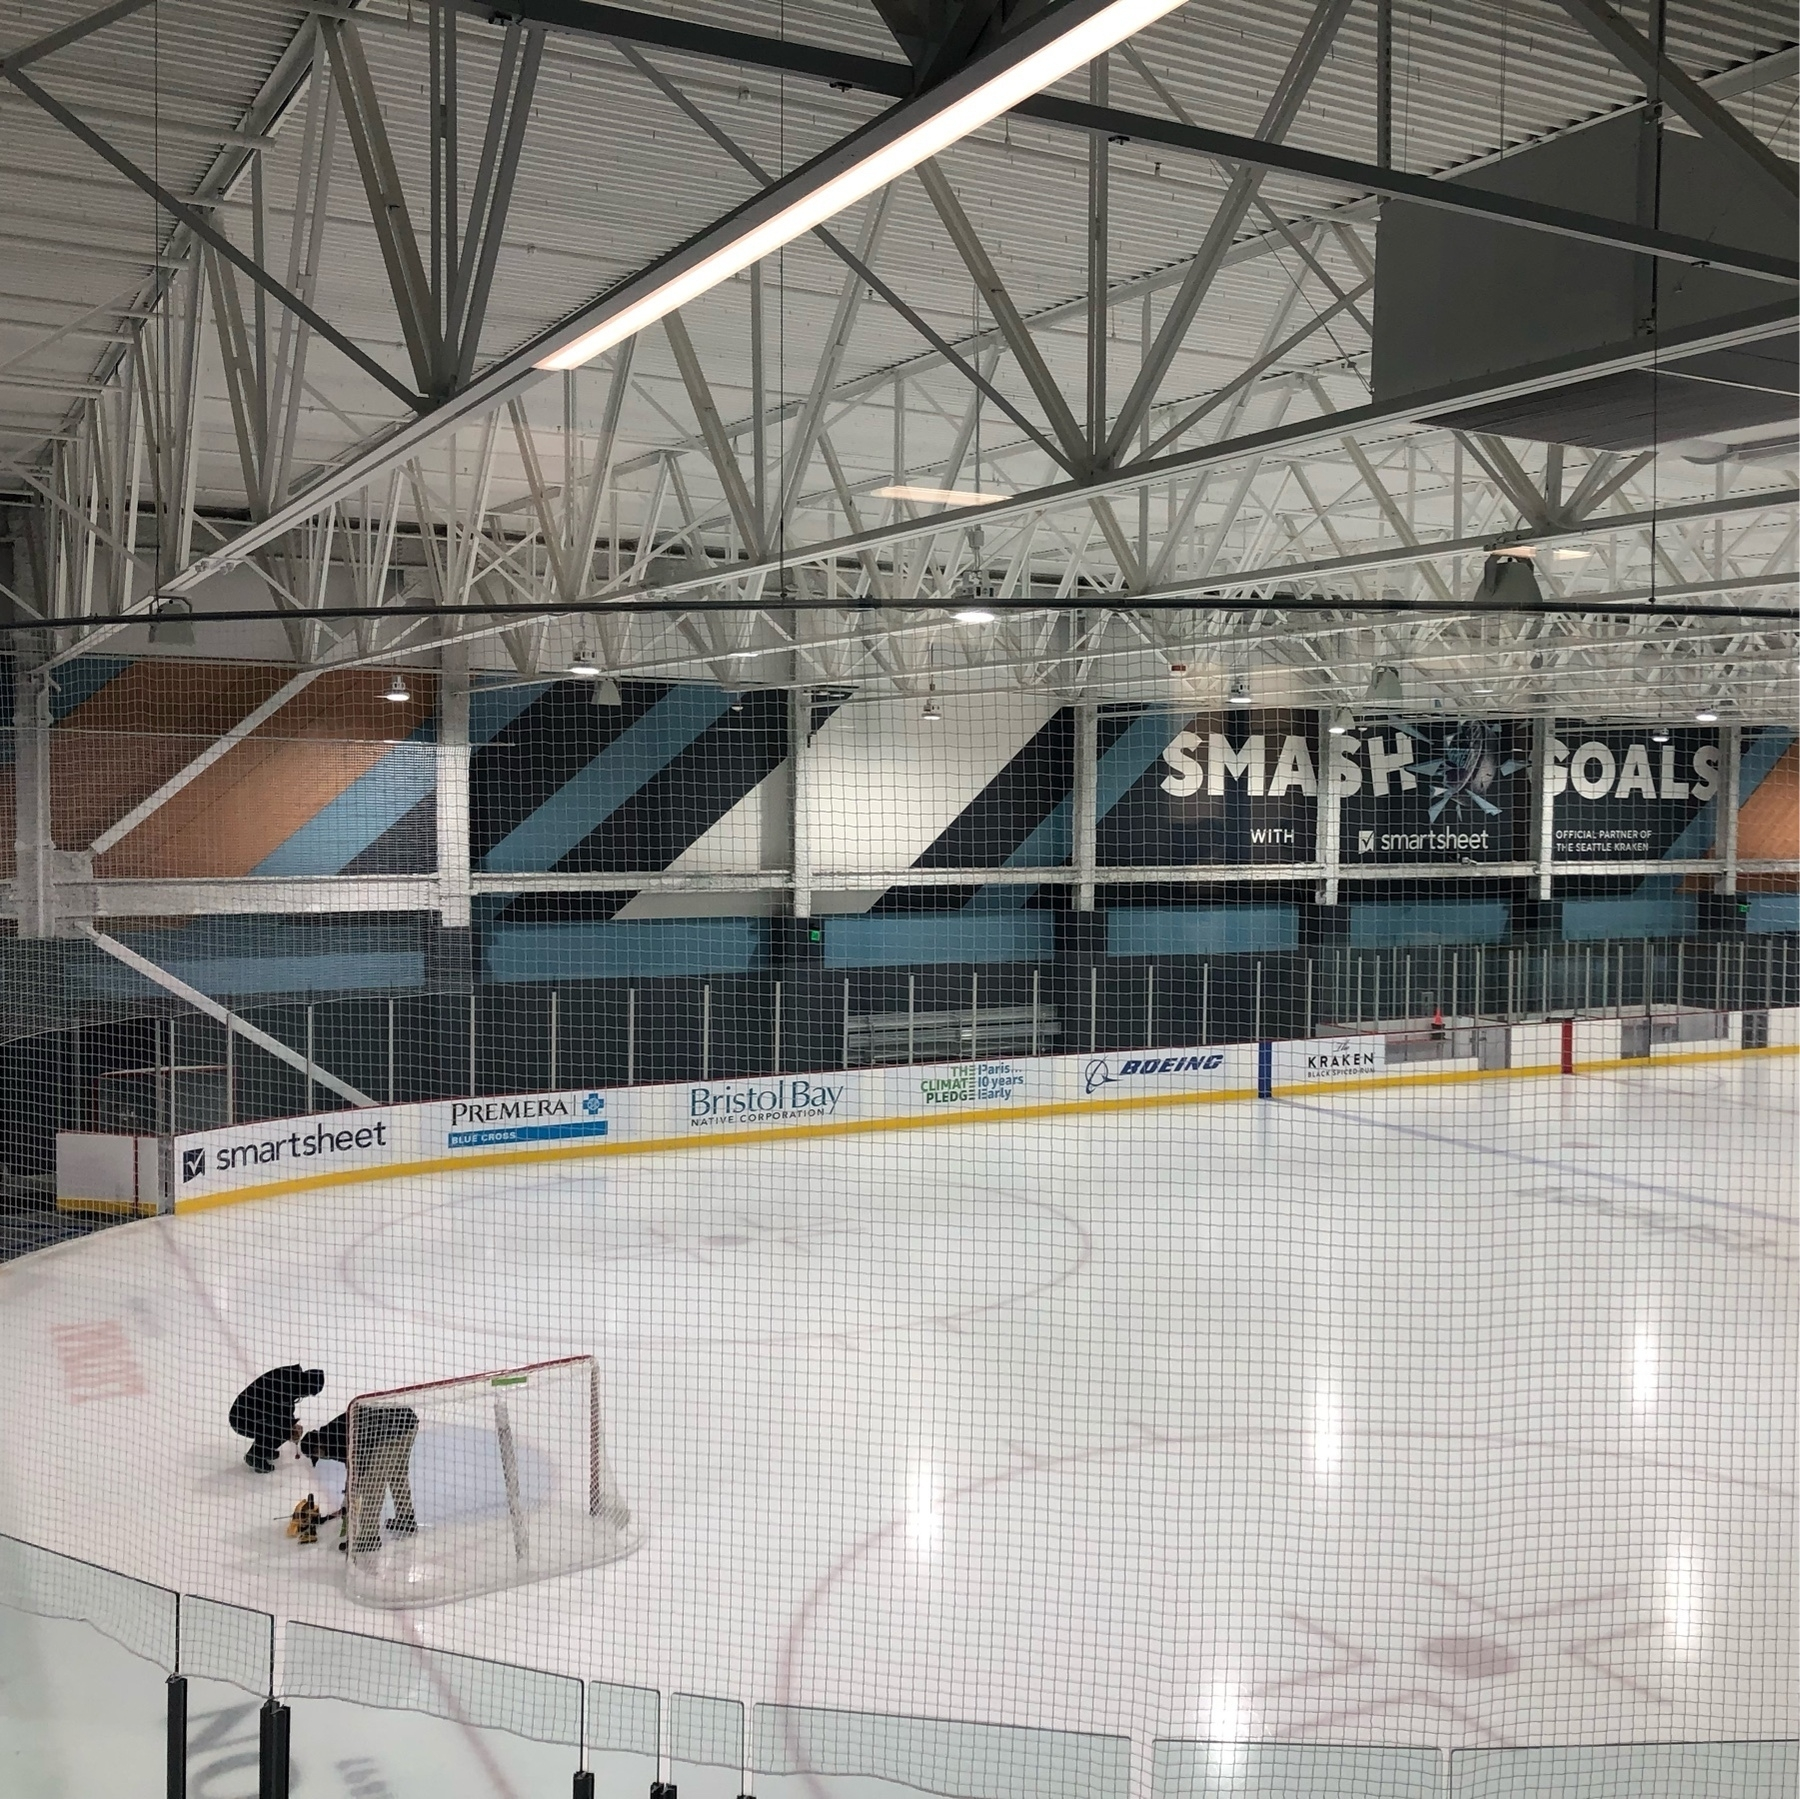 A brand new ice rink